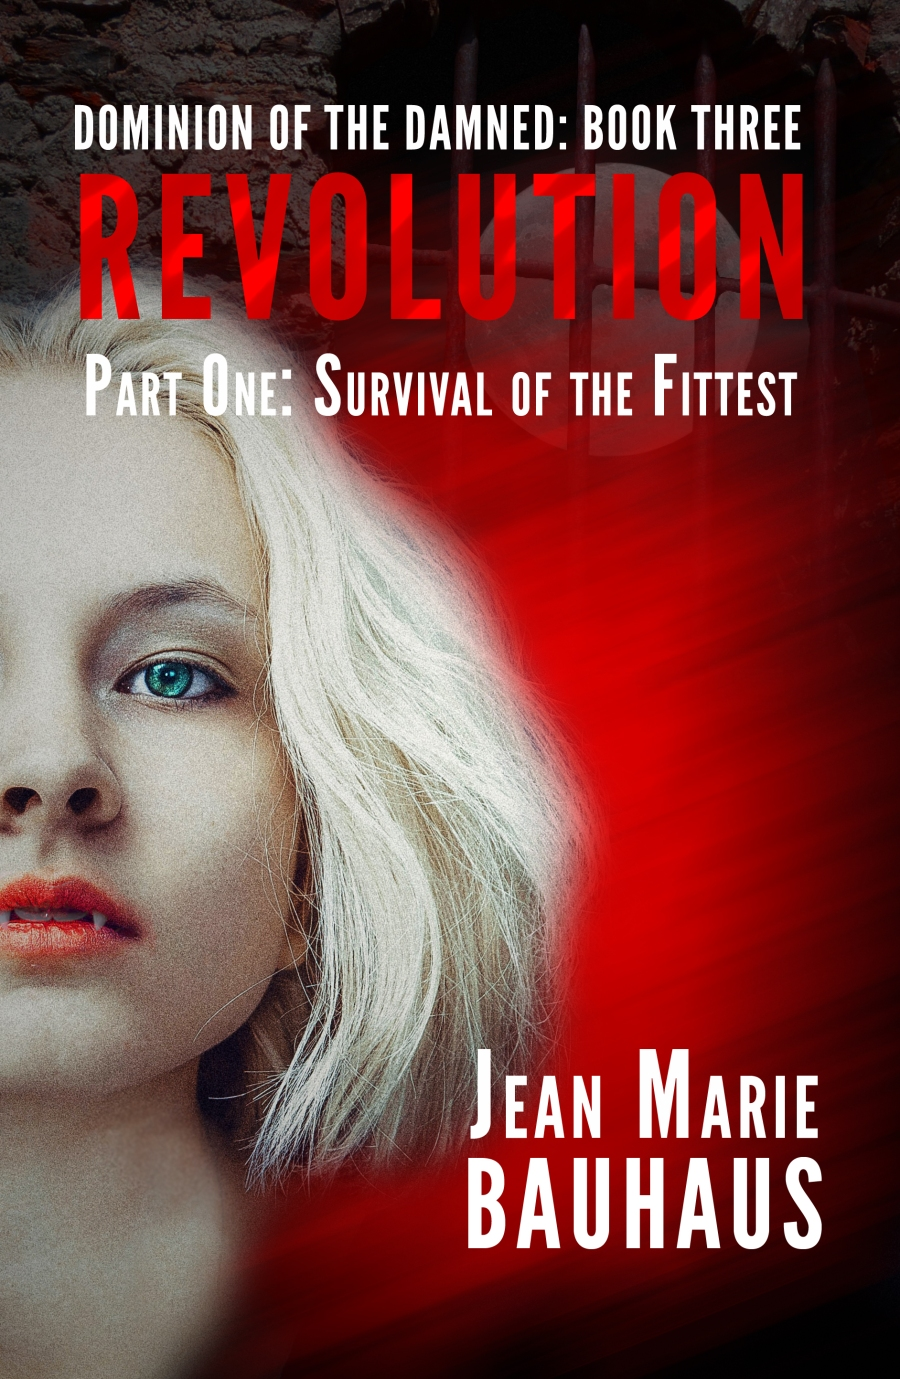 Revolution: Dominion of the Damned by Jean Marie Bauhaus